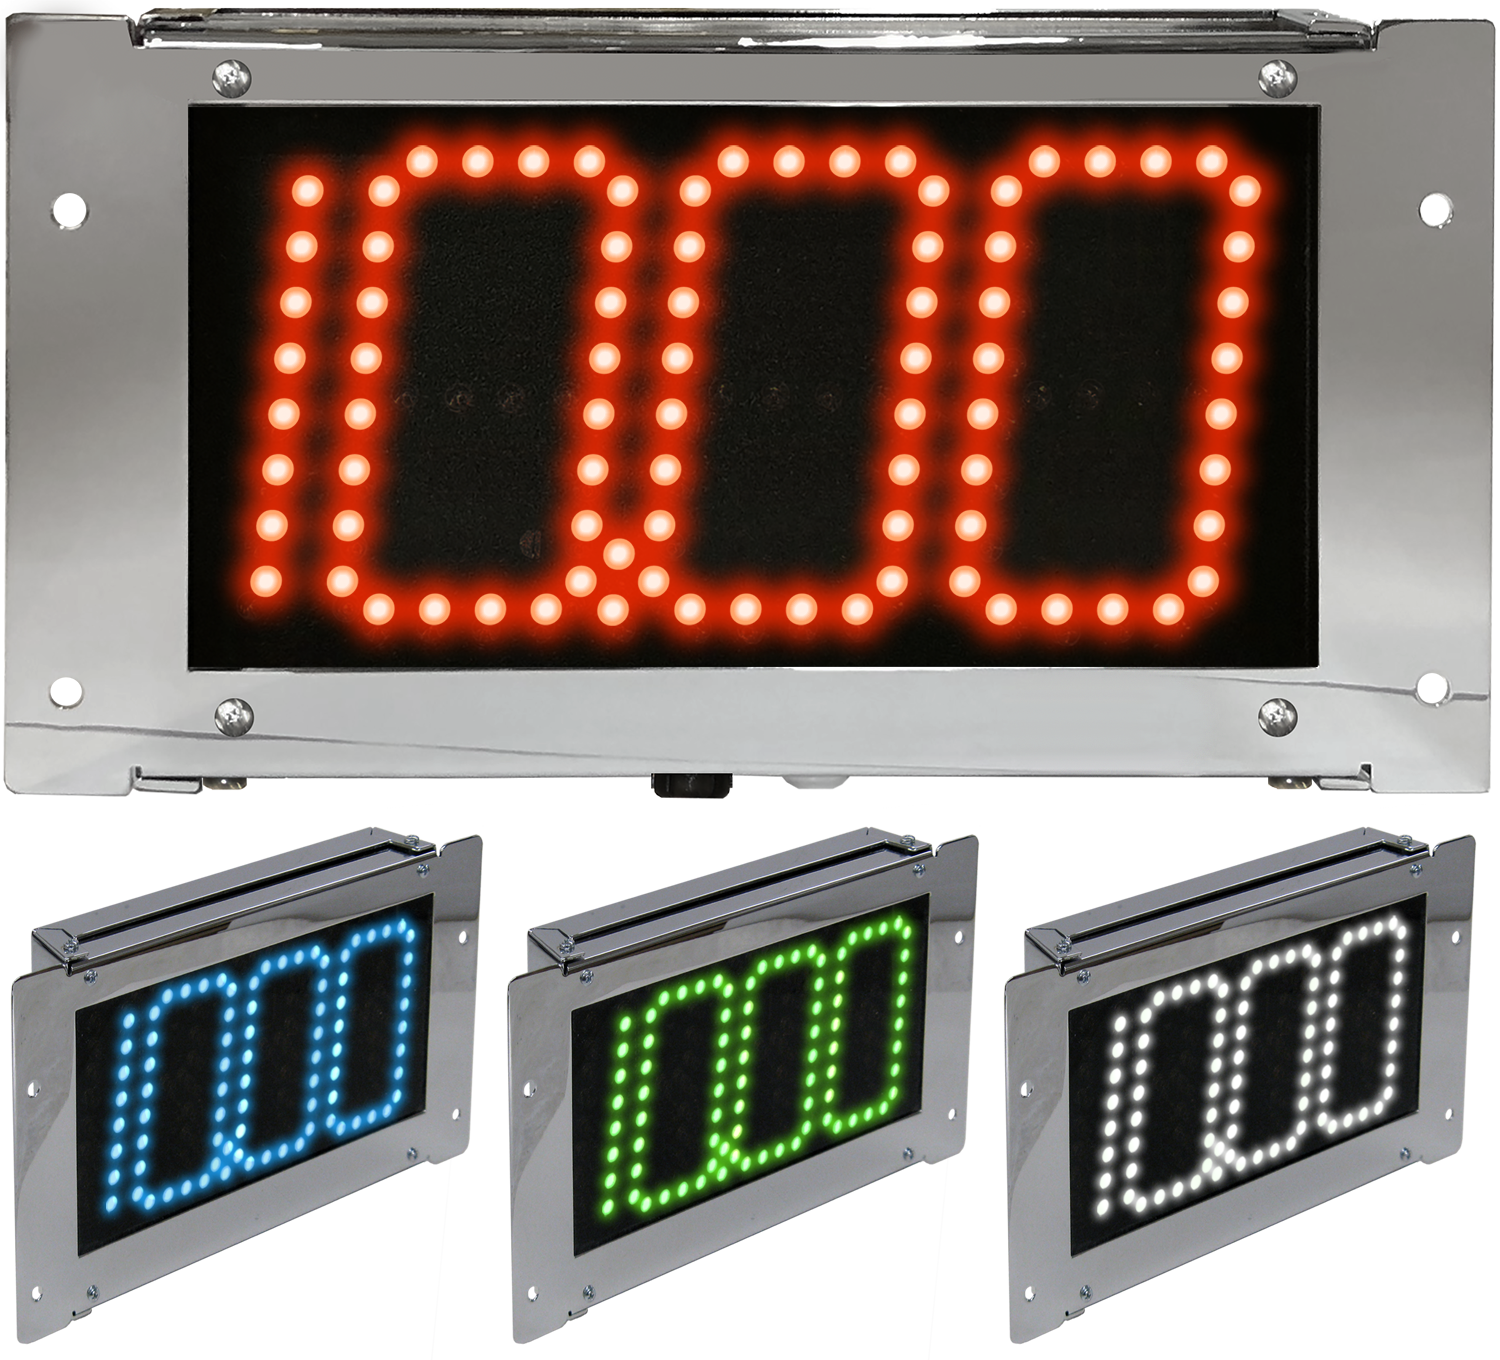 Digital Delay Elite Mega Dial Panel Chrome Racecraft Chassis Led Display Wiring Diagram Complete Color Coded Kit With Connectors And Professionally Wire Your Race Car For Years Of Trouble Free Racing